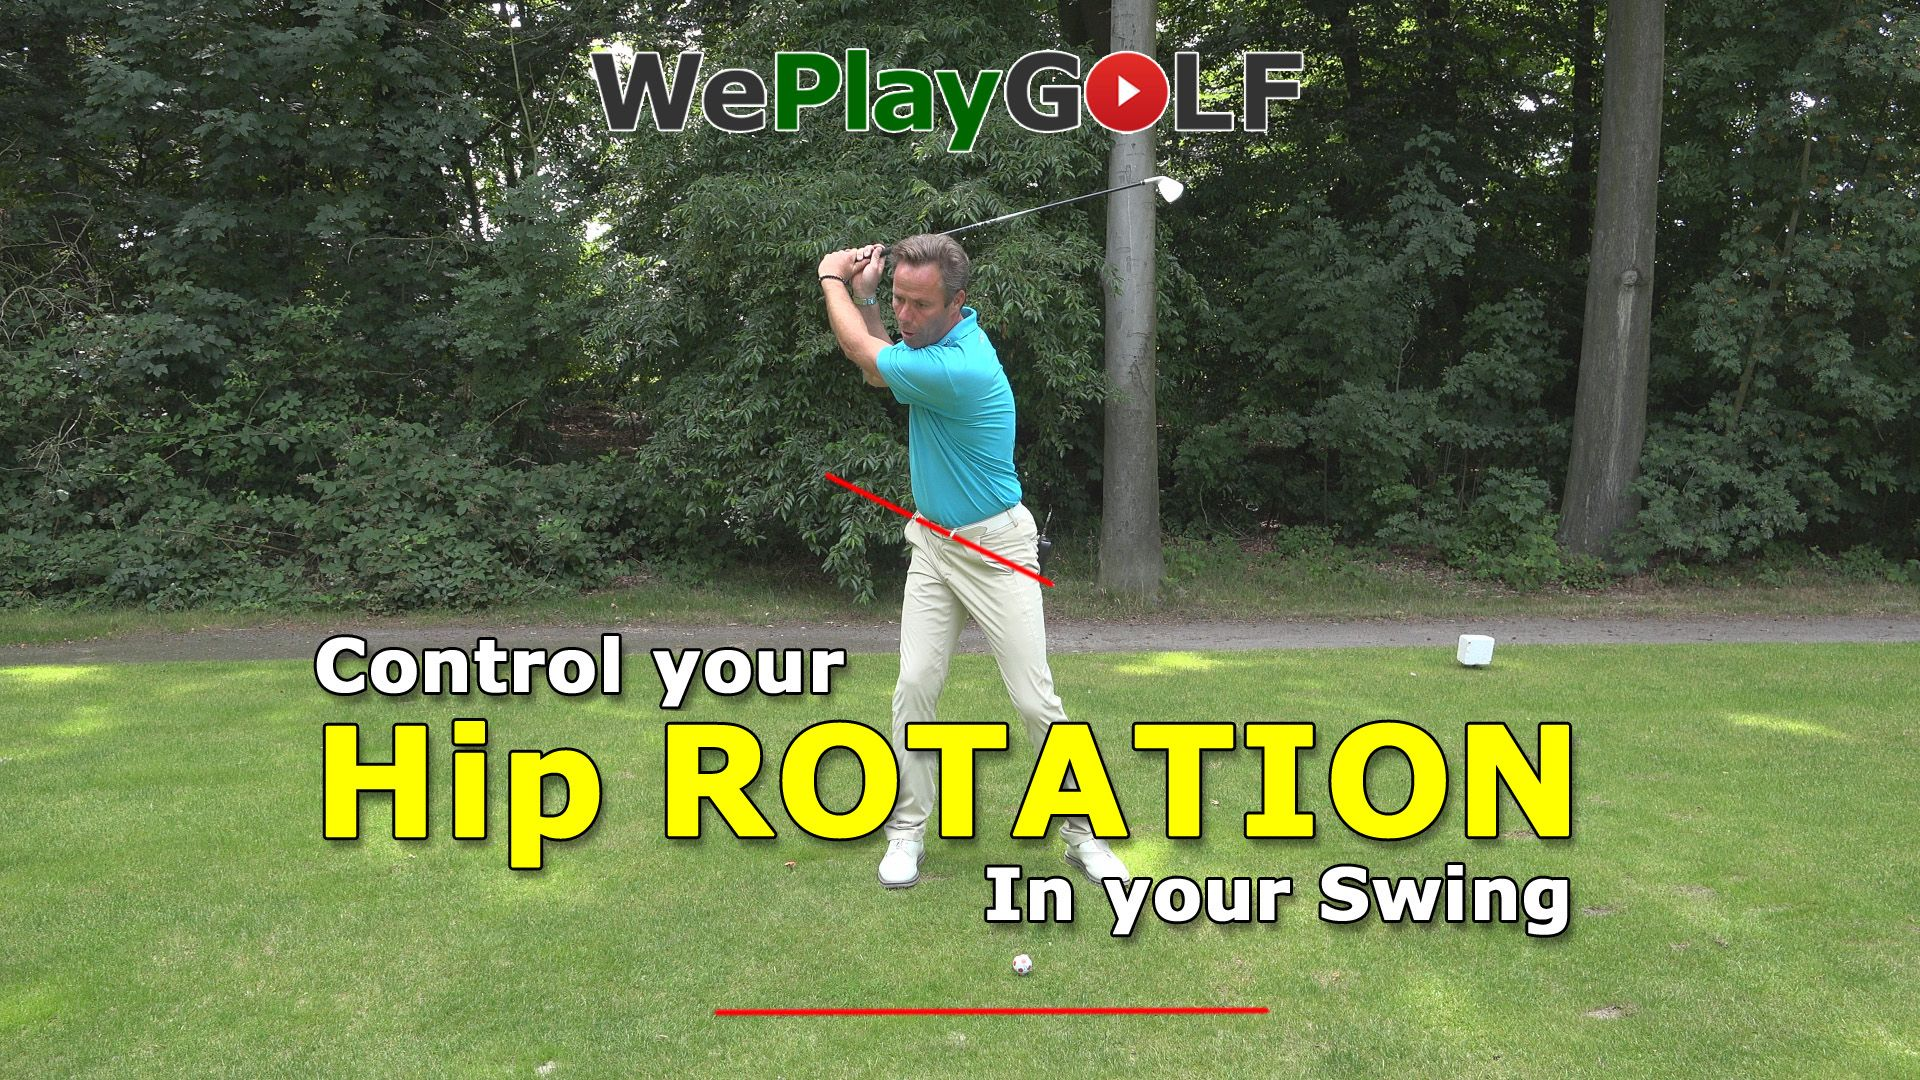 Videotip: Controleer de heup rotatie in de swing - Video - Blog